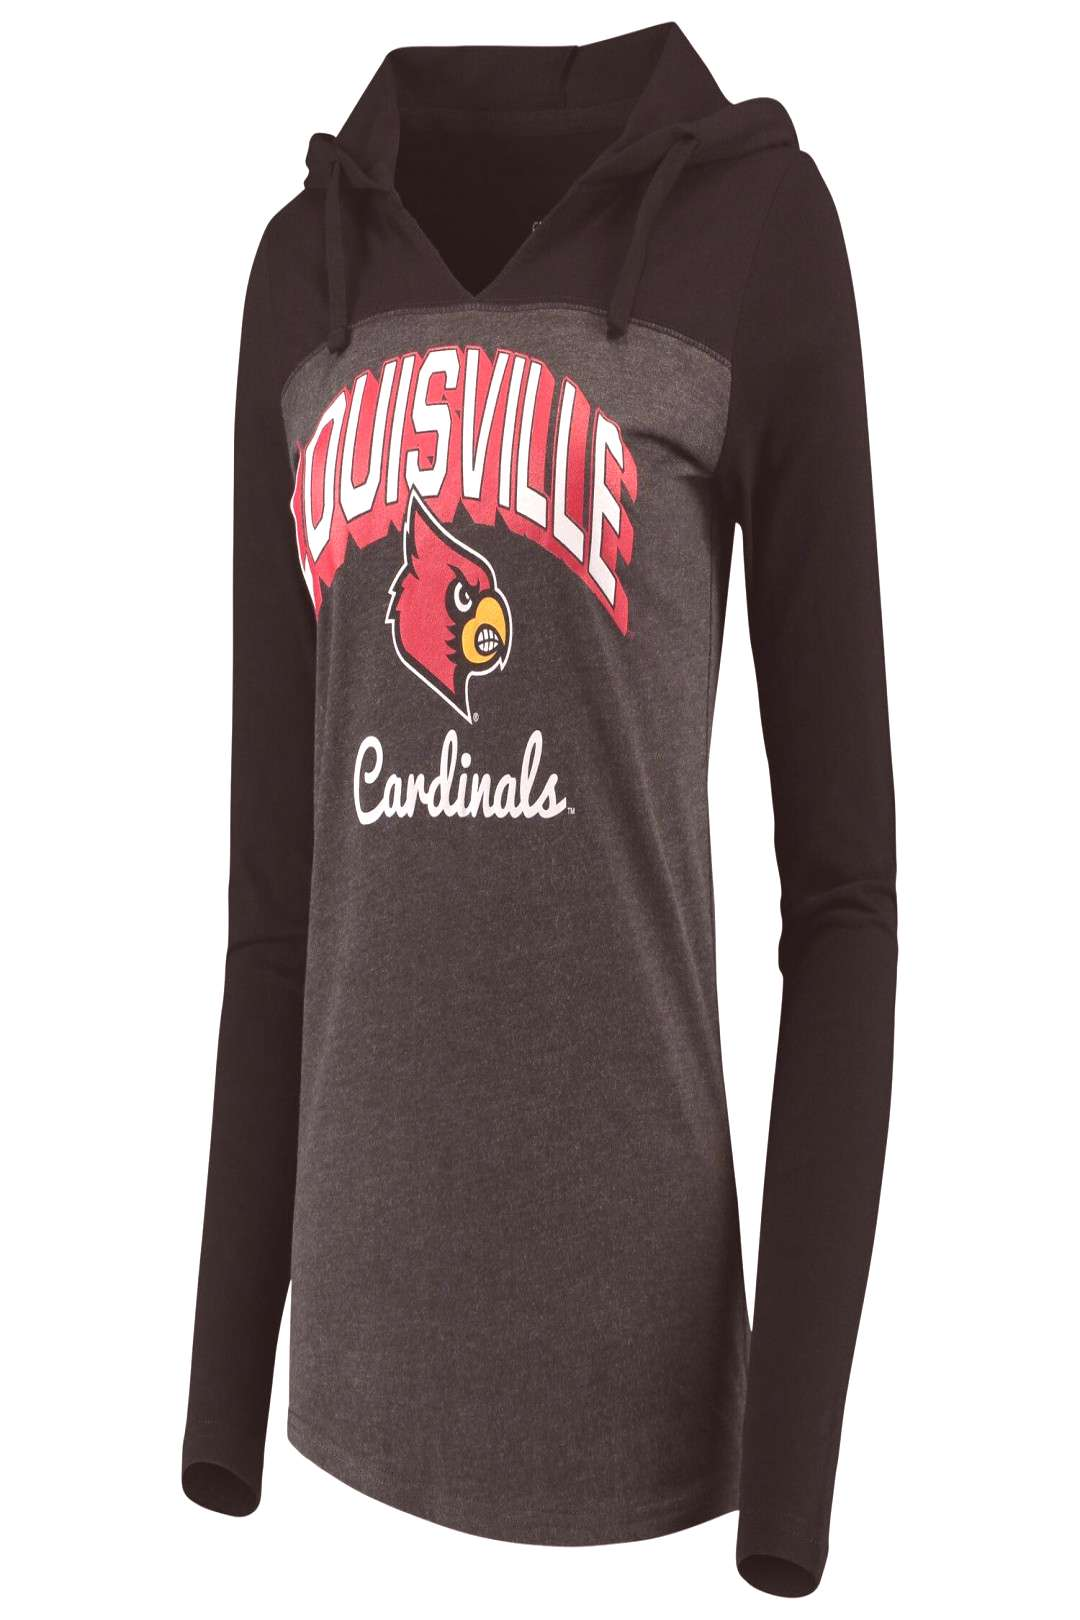 Womens Charcoal Louisville Cardinals Knockout Color Block Hooded Long Sleeve V-Neck T-Shirt